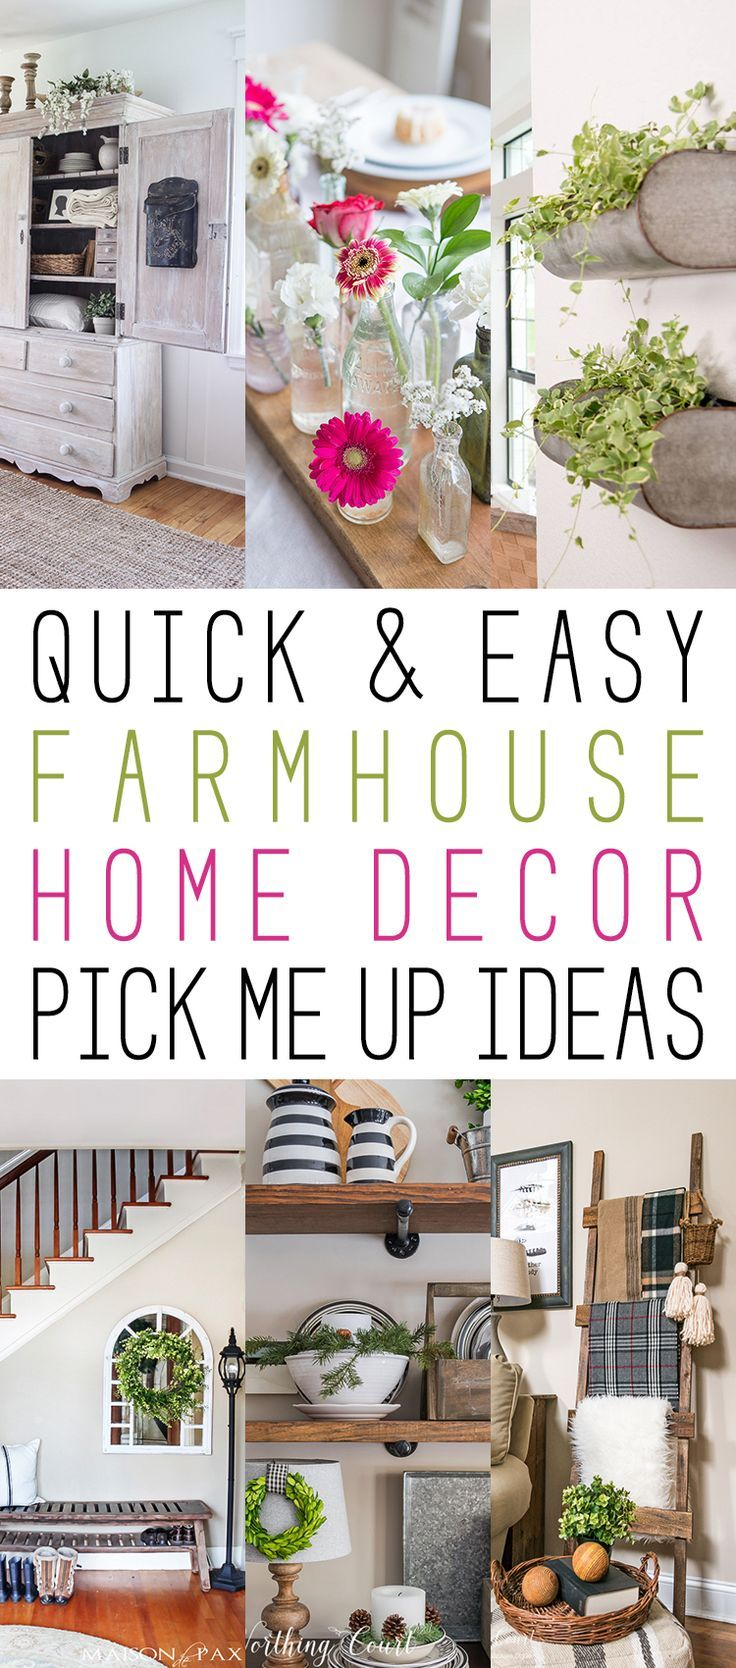 Quick and Easy Farmhouse Home Decor Pick Me Up Ideas | Easy ...